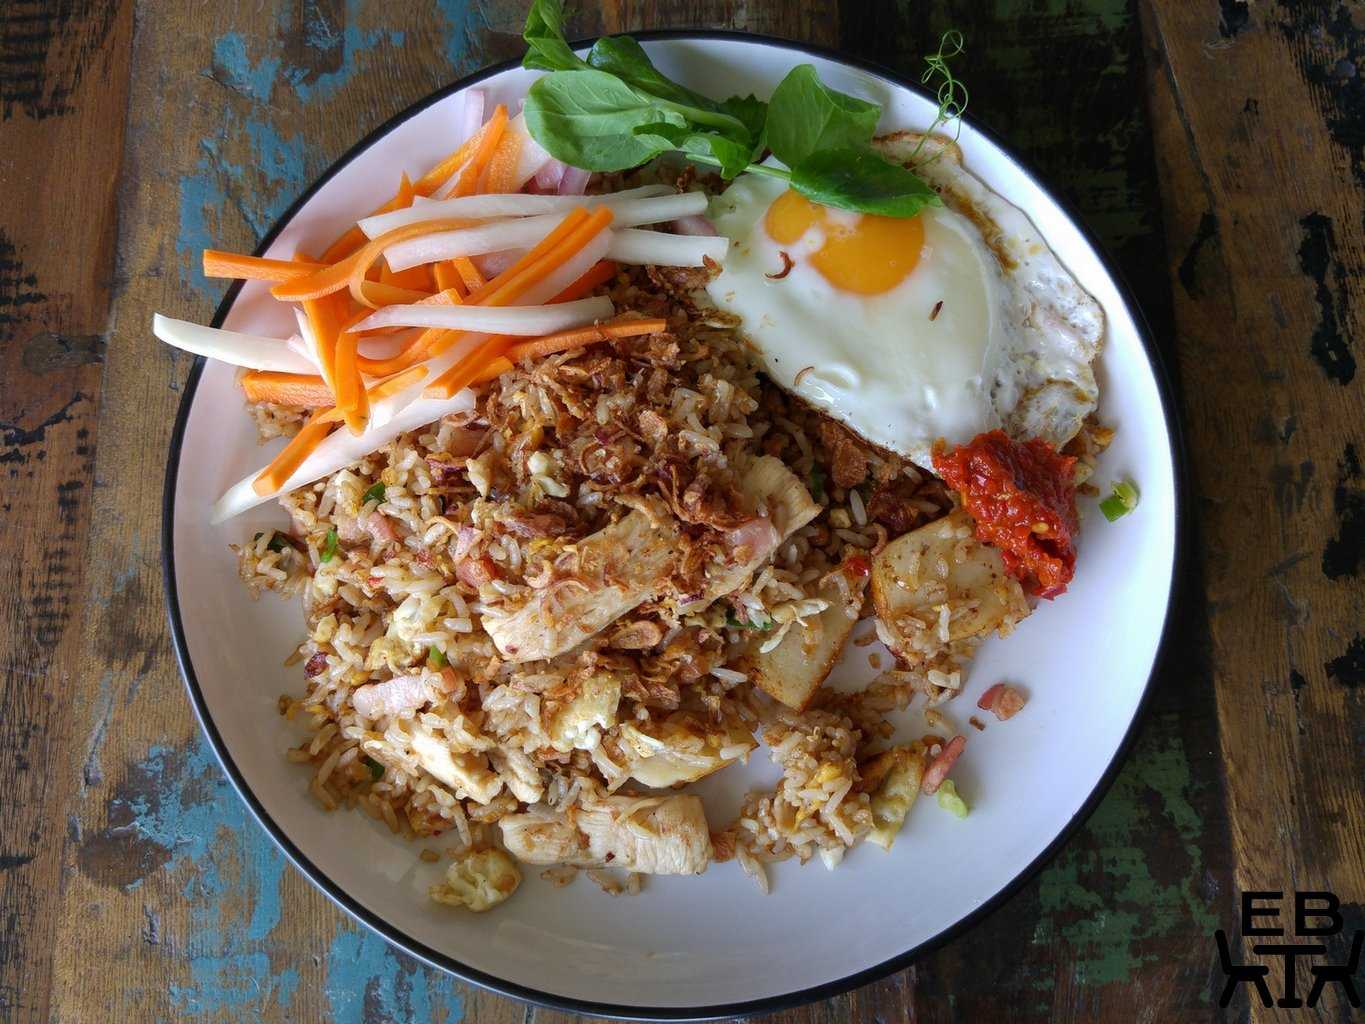 Lazy dog nasi goreng